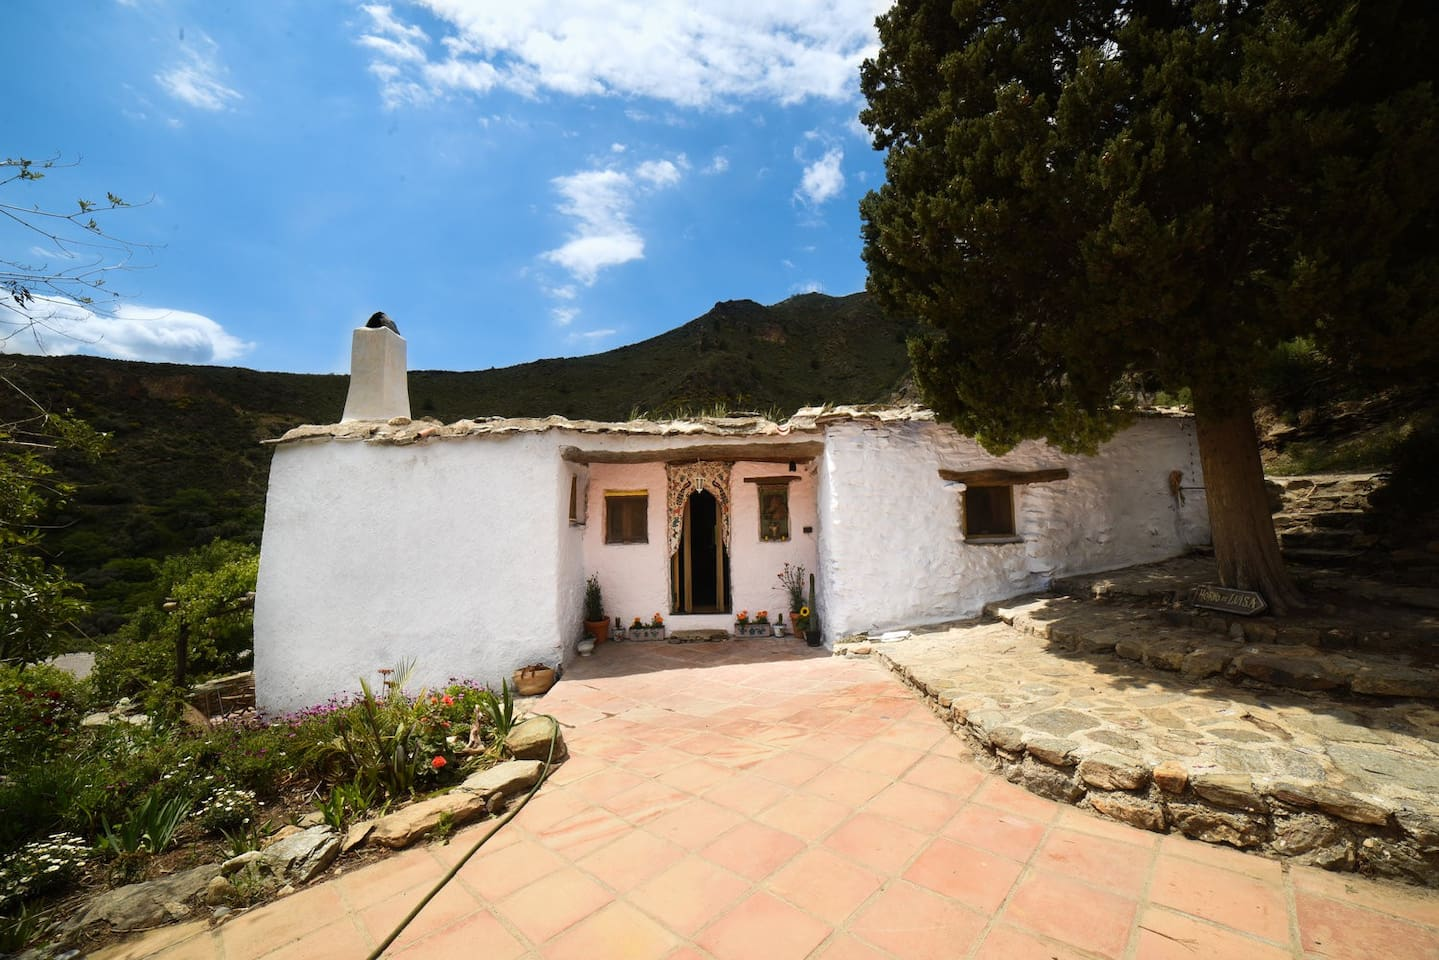 Our traditional Alpujarran style farmhouse, fully modernised for comfortable off grid life. Escape the bustle of modernity without missing out on comfort.